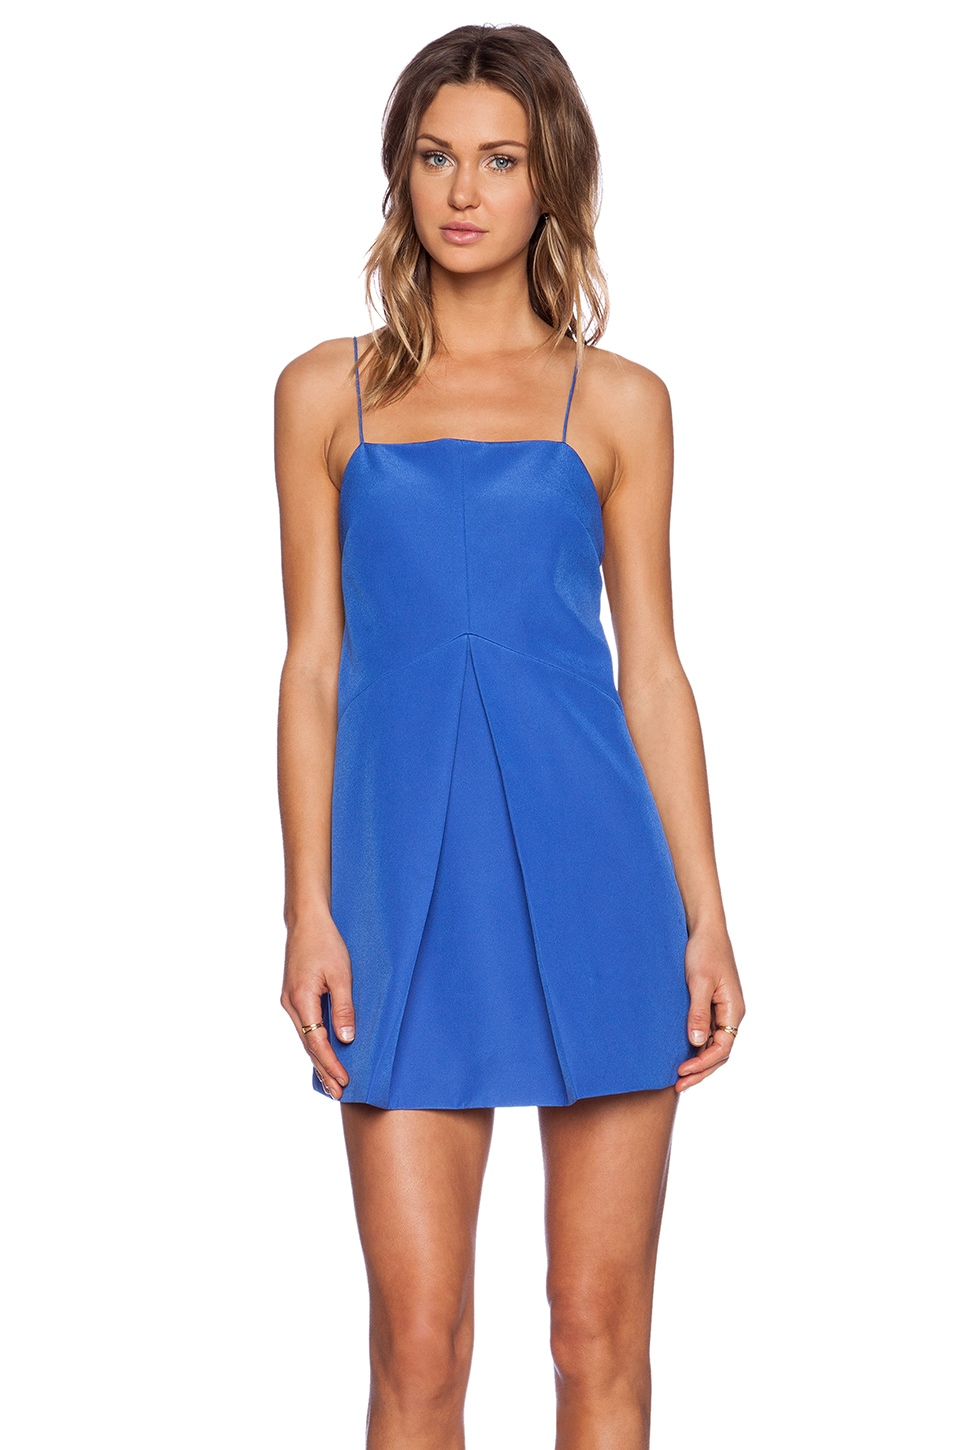 Finders Keepers All Time High Cut Out Back Dress in Dazzling Blue